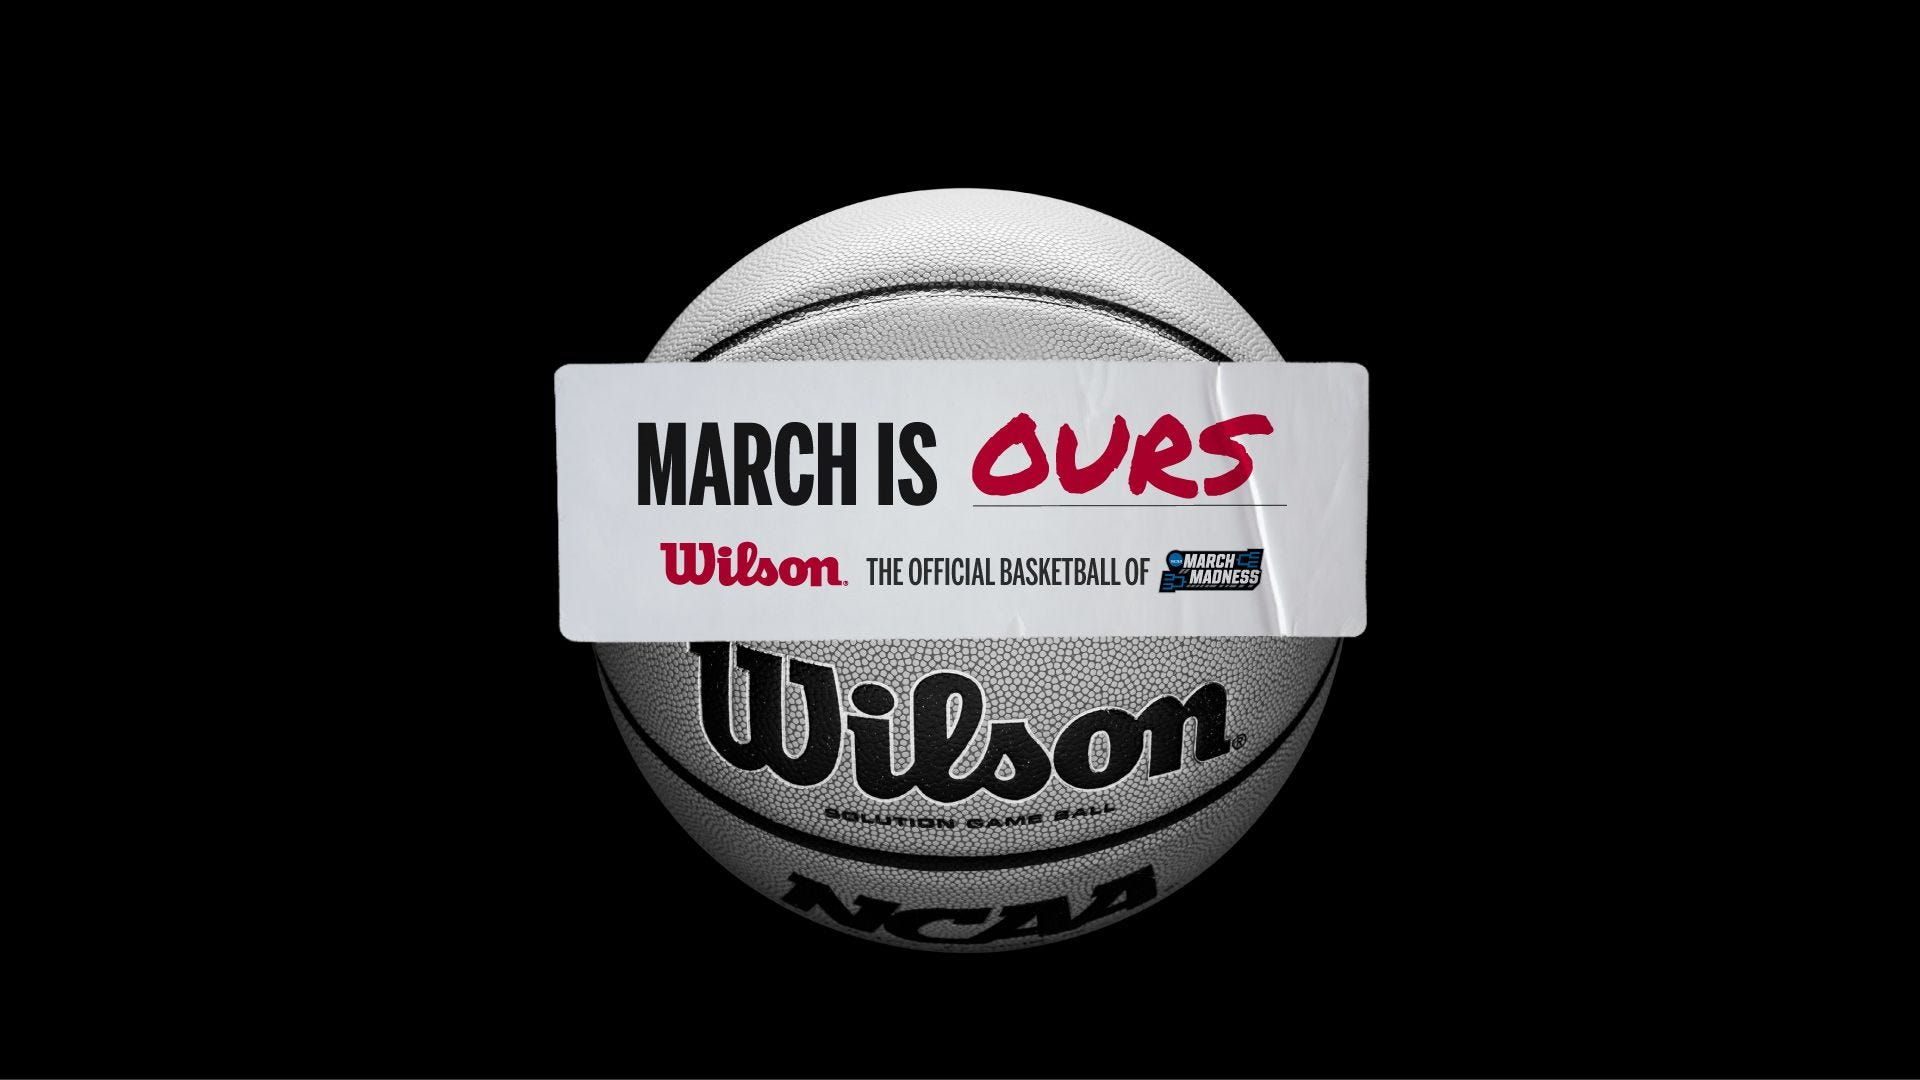 wilson is the official basketball of march madness